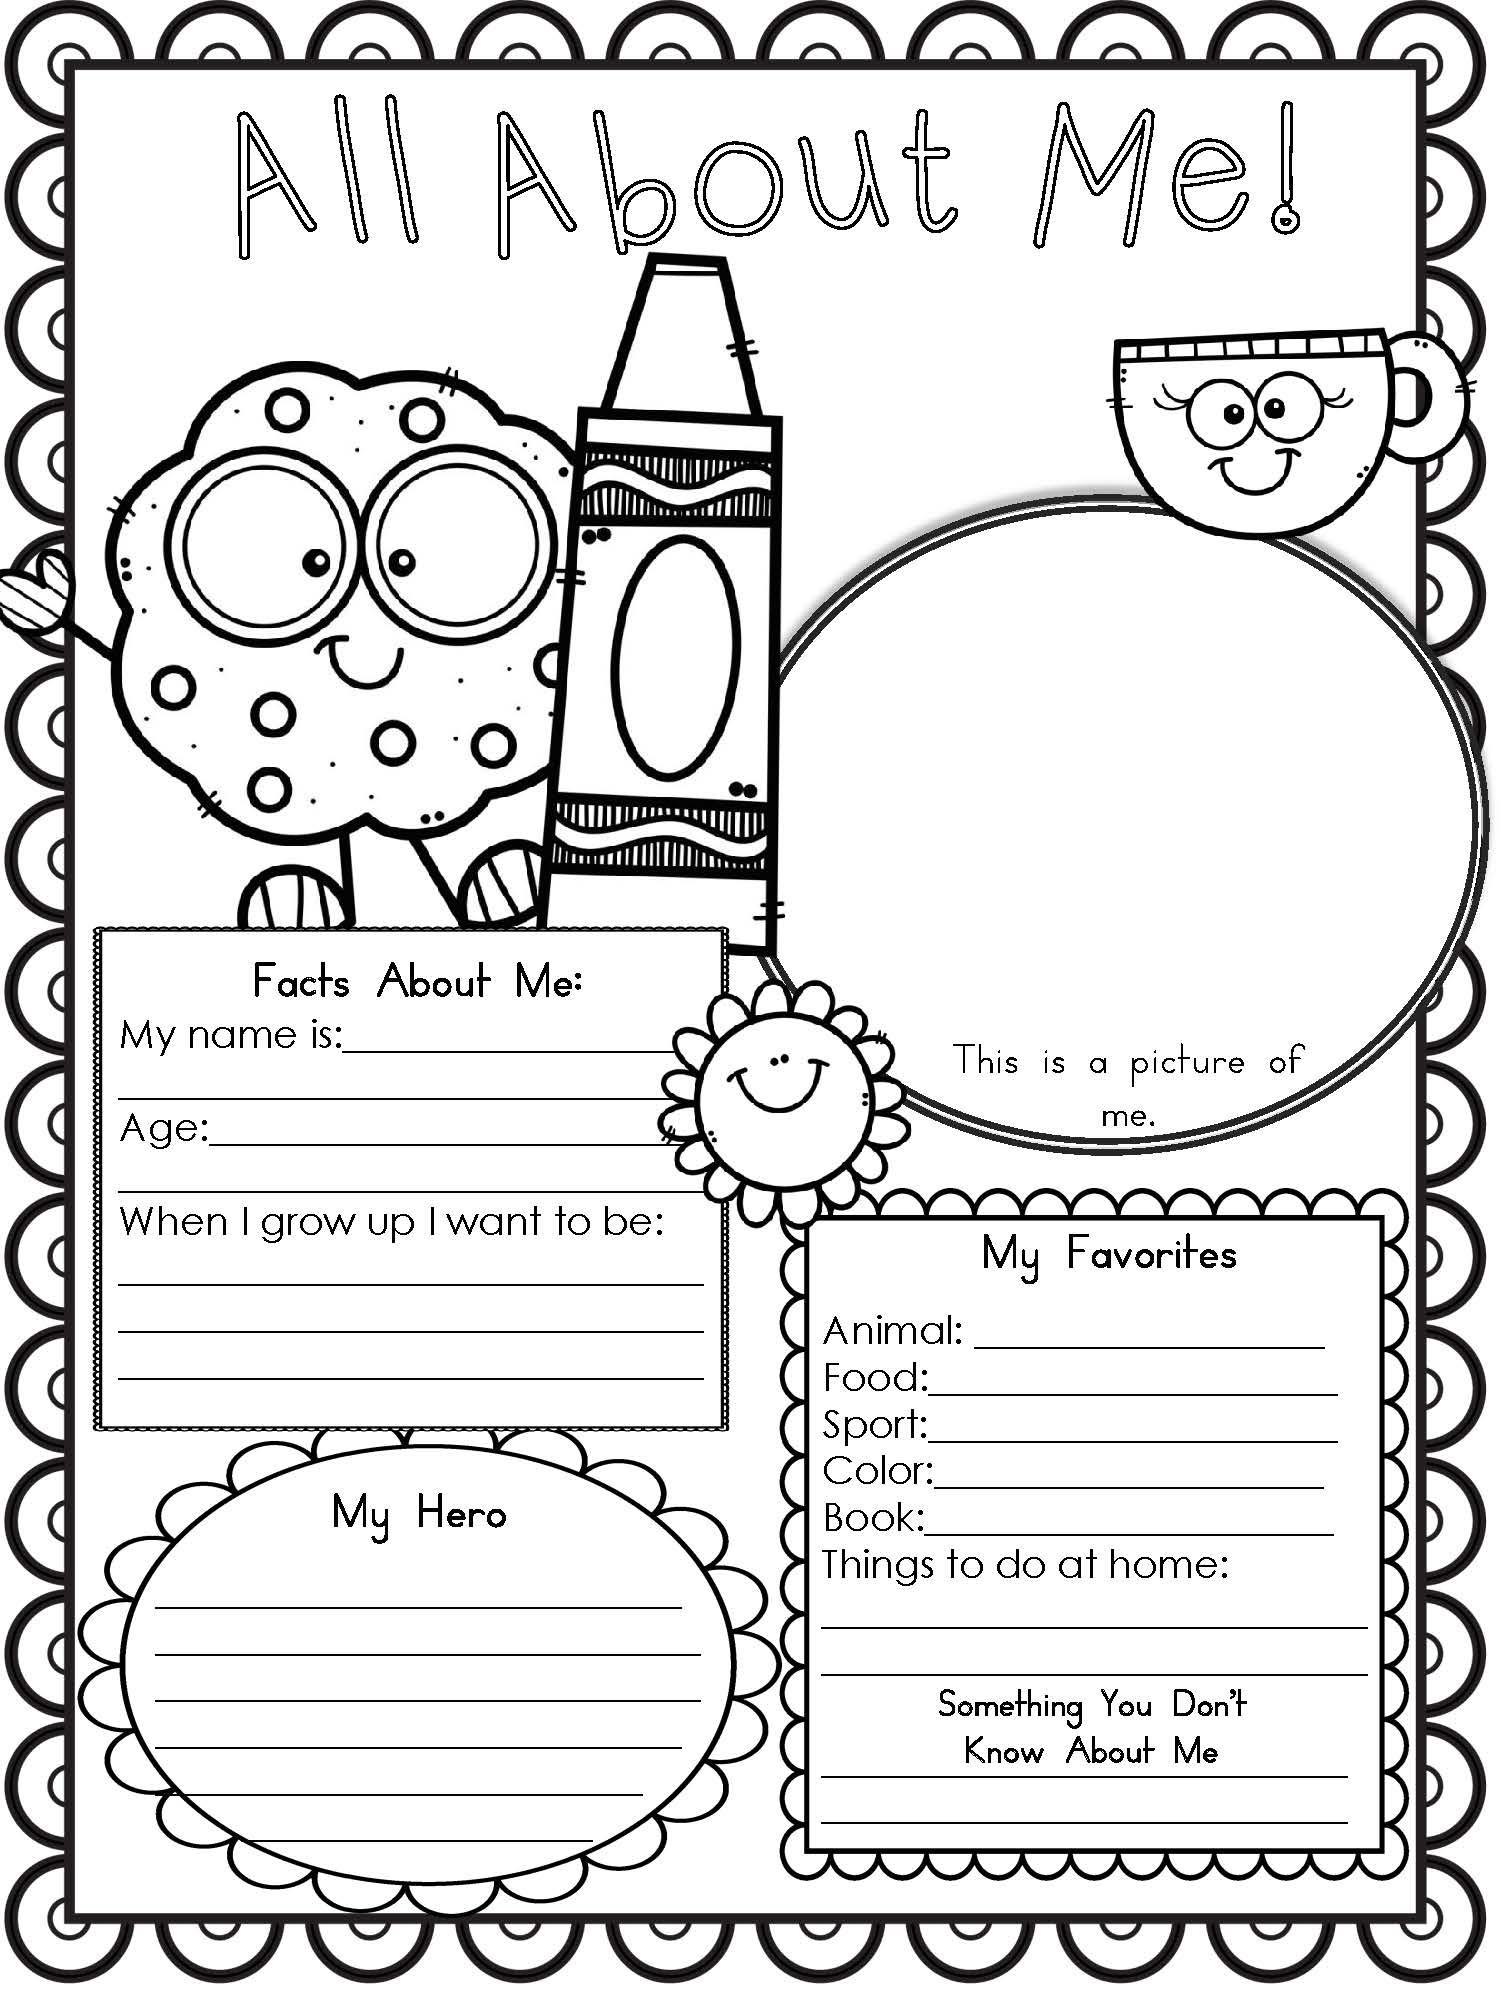 Free Printable All About Me Worksheet - Modern Homeschool Family - All About Me Free Printable